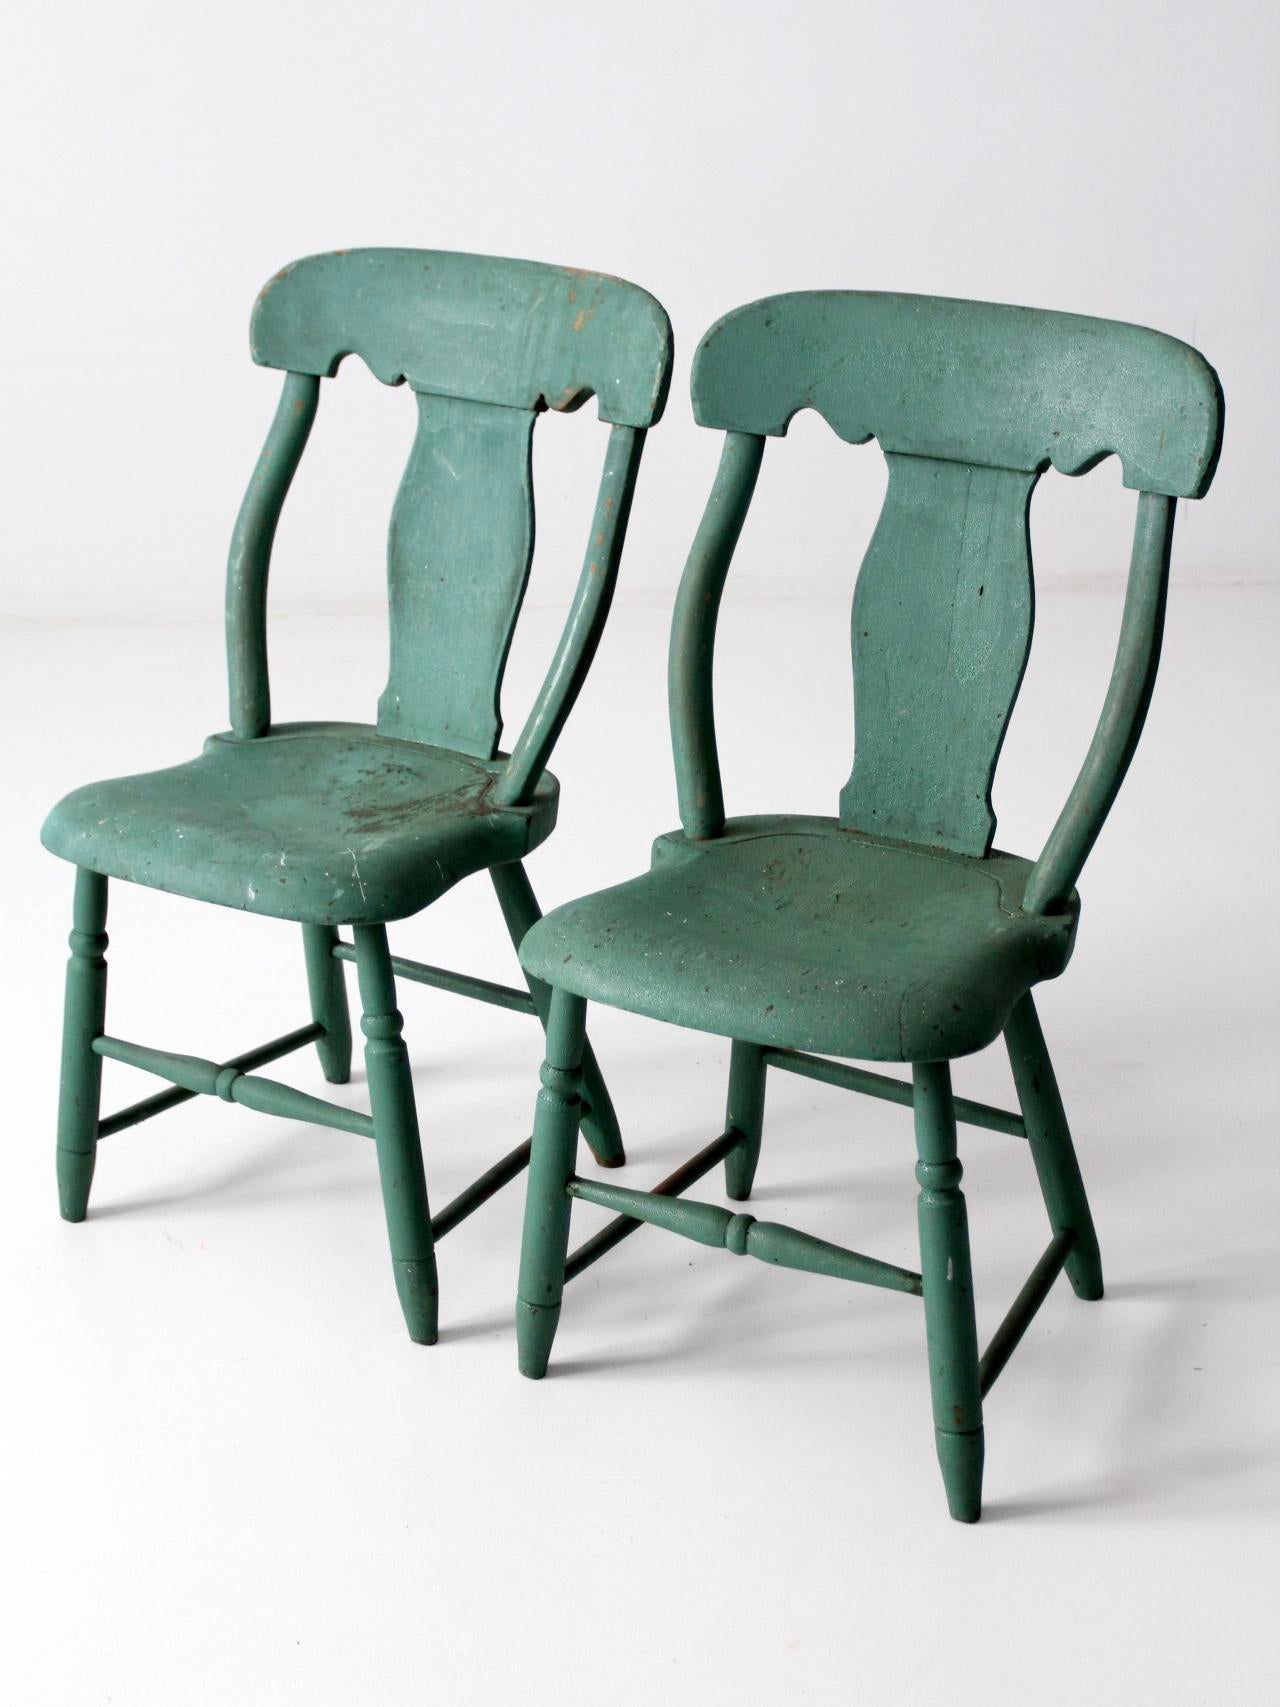 Antique Green Fiddle Back Chairs   Set Of 2 For Sale   Image 5 Of 9